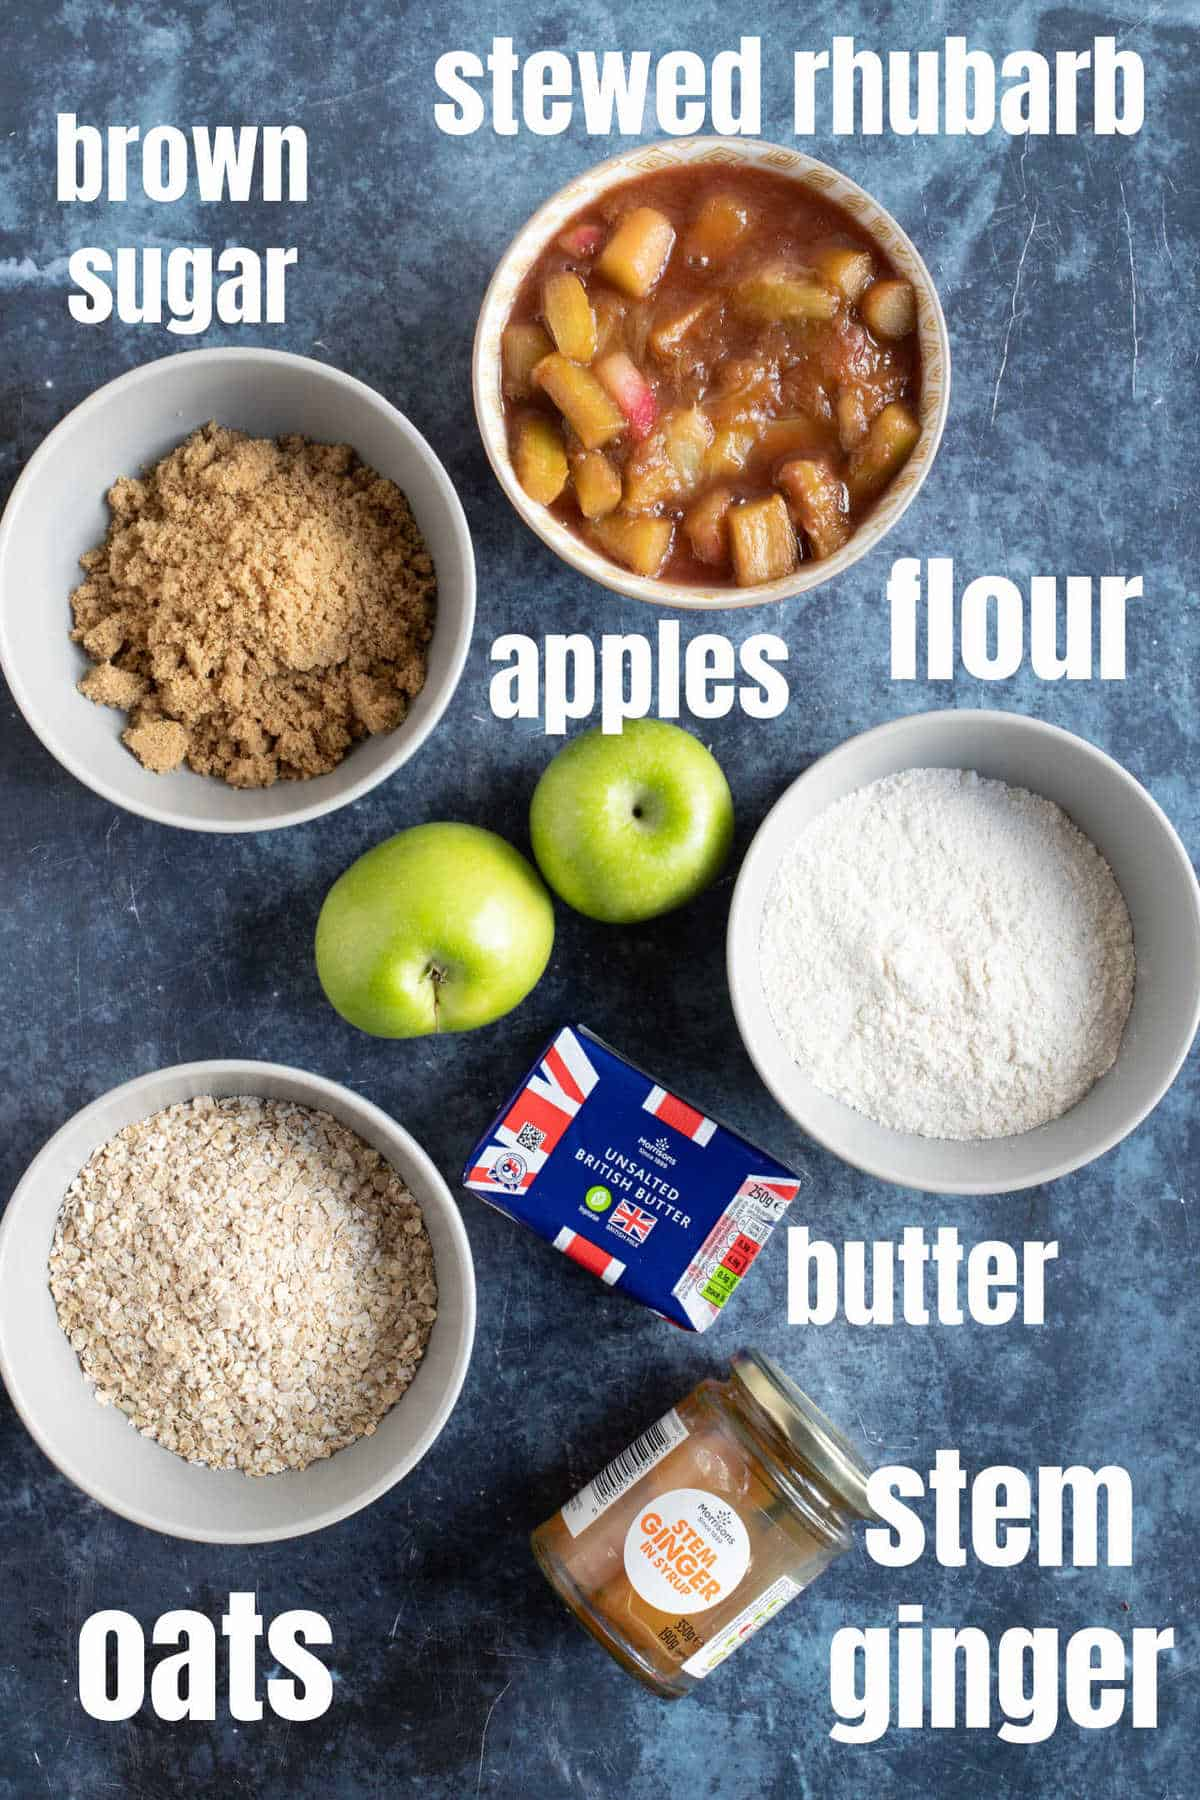 Ingredients for rhubarb and ginger crumble.